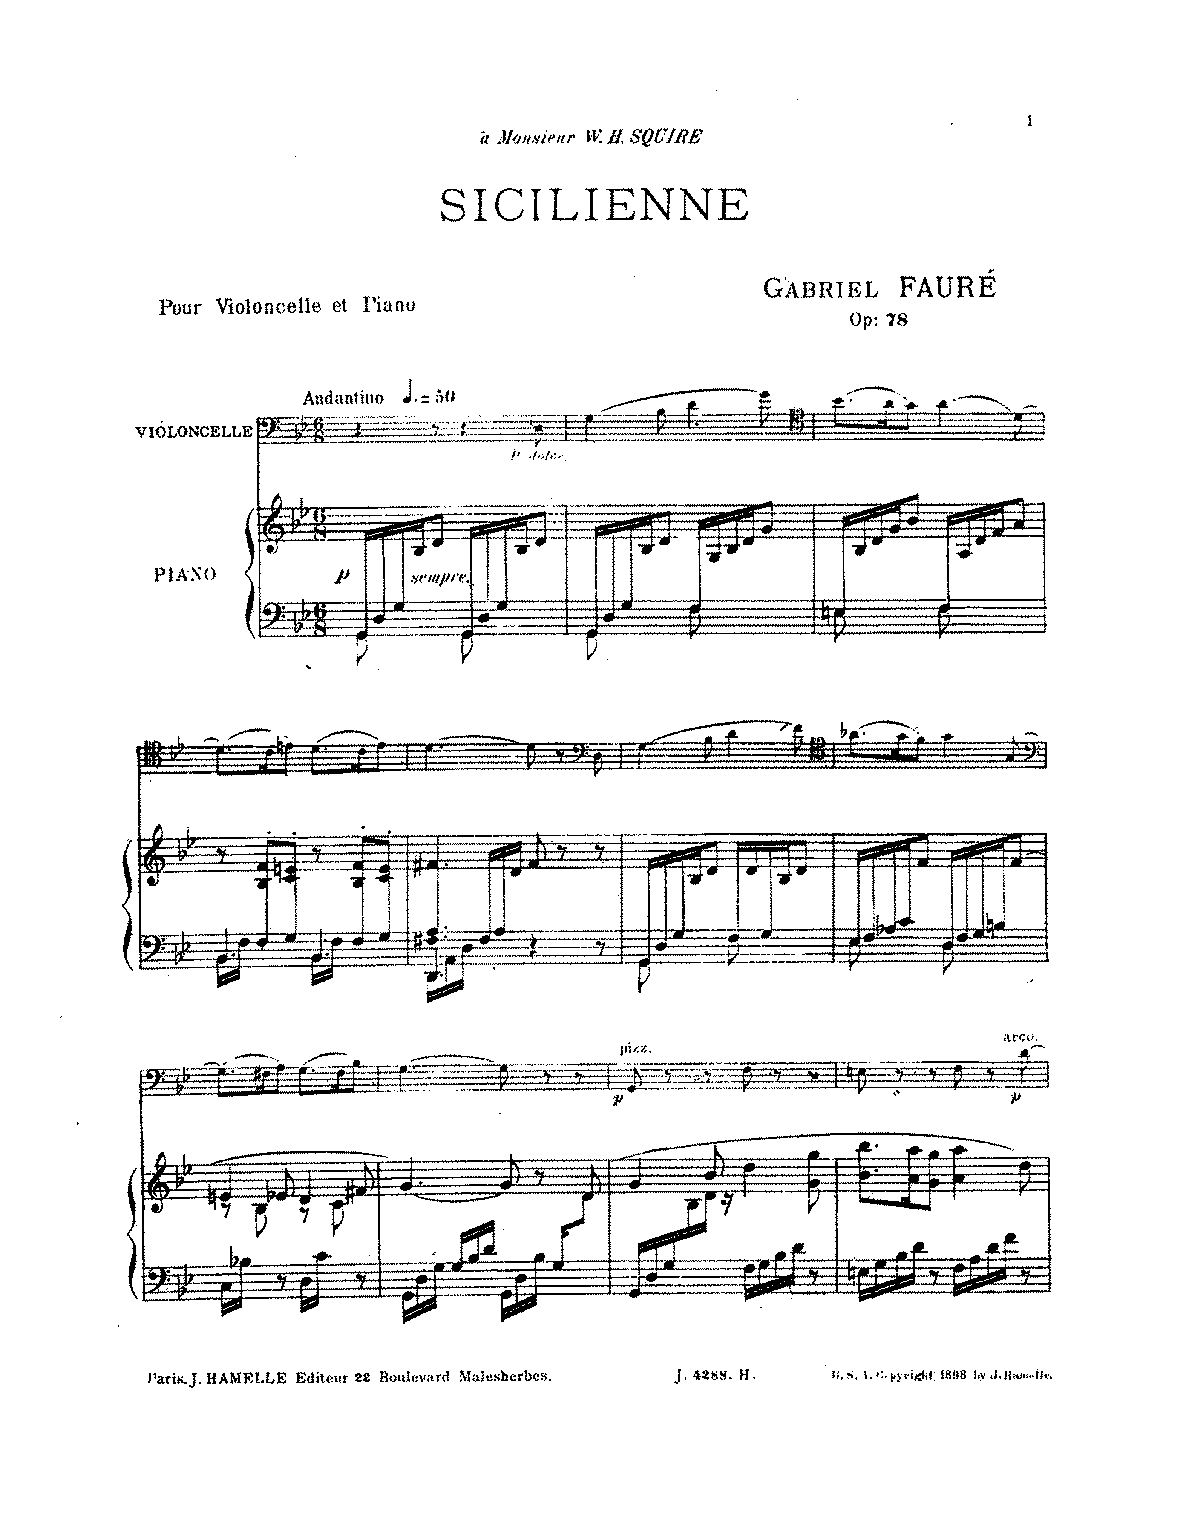 Suzuki Cello Piano Accompaniement